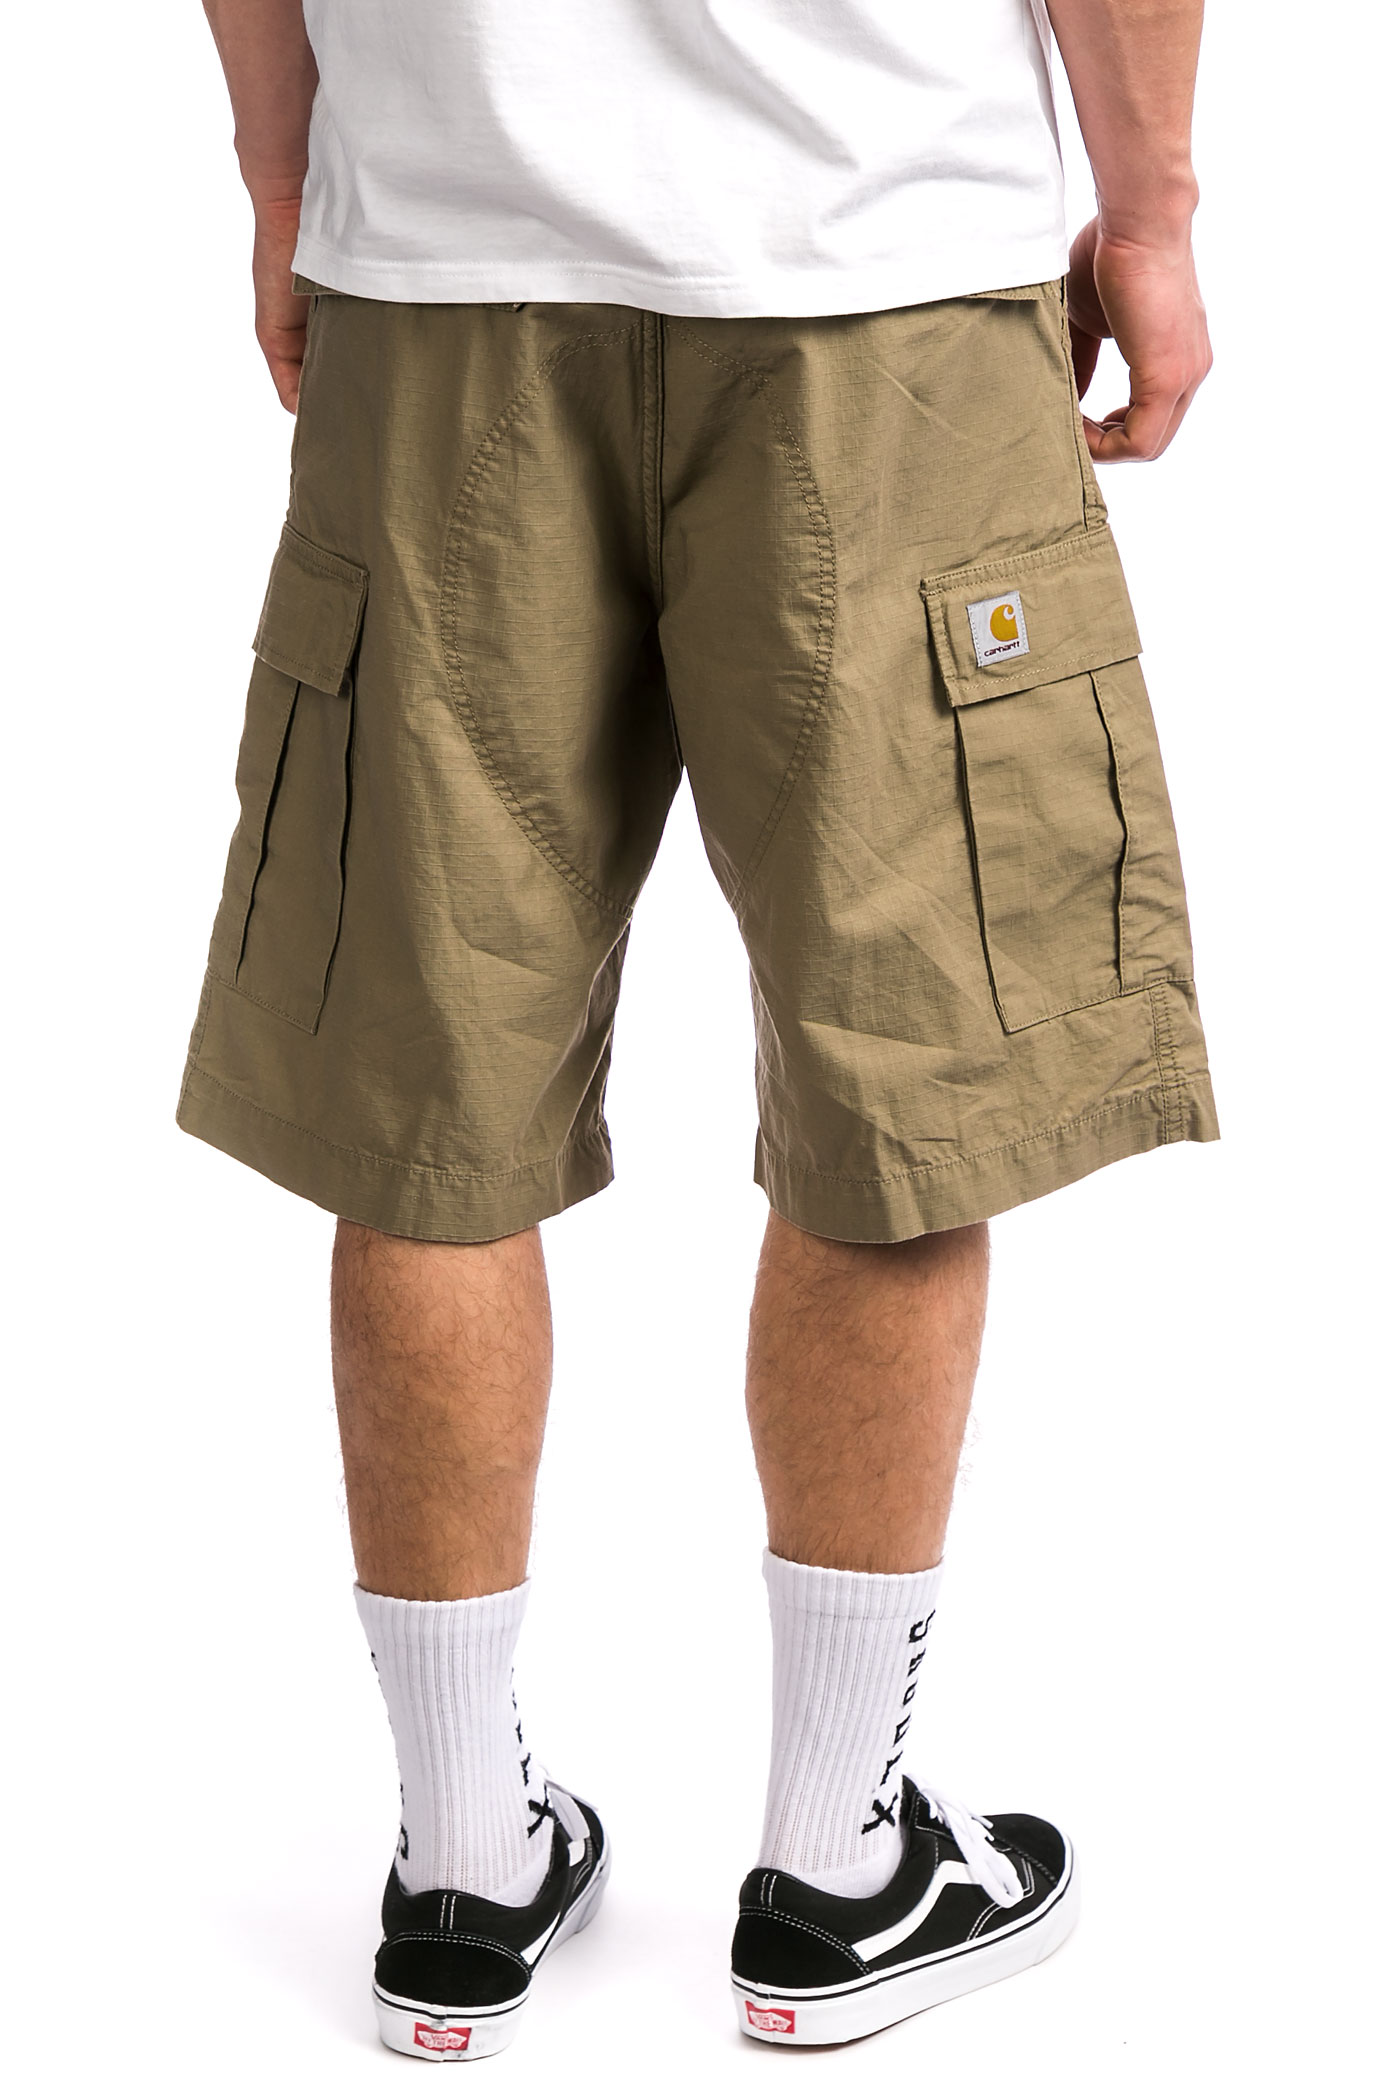 carhartt wip cargo columbia shorts leather rinsed kaufen bei skatedeluxe. Black Bedroom Furniture Sets. Home Design Ideas